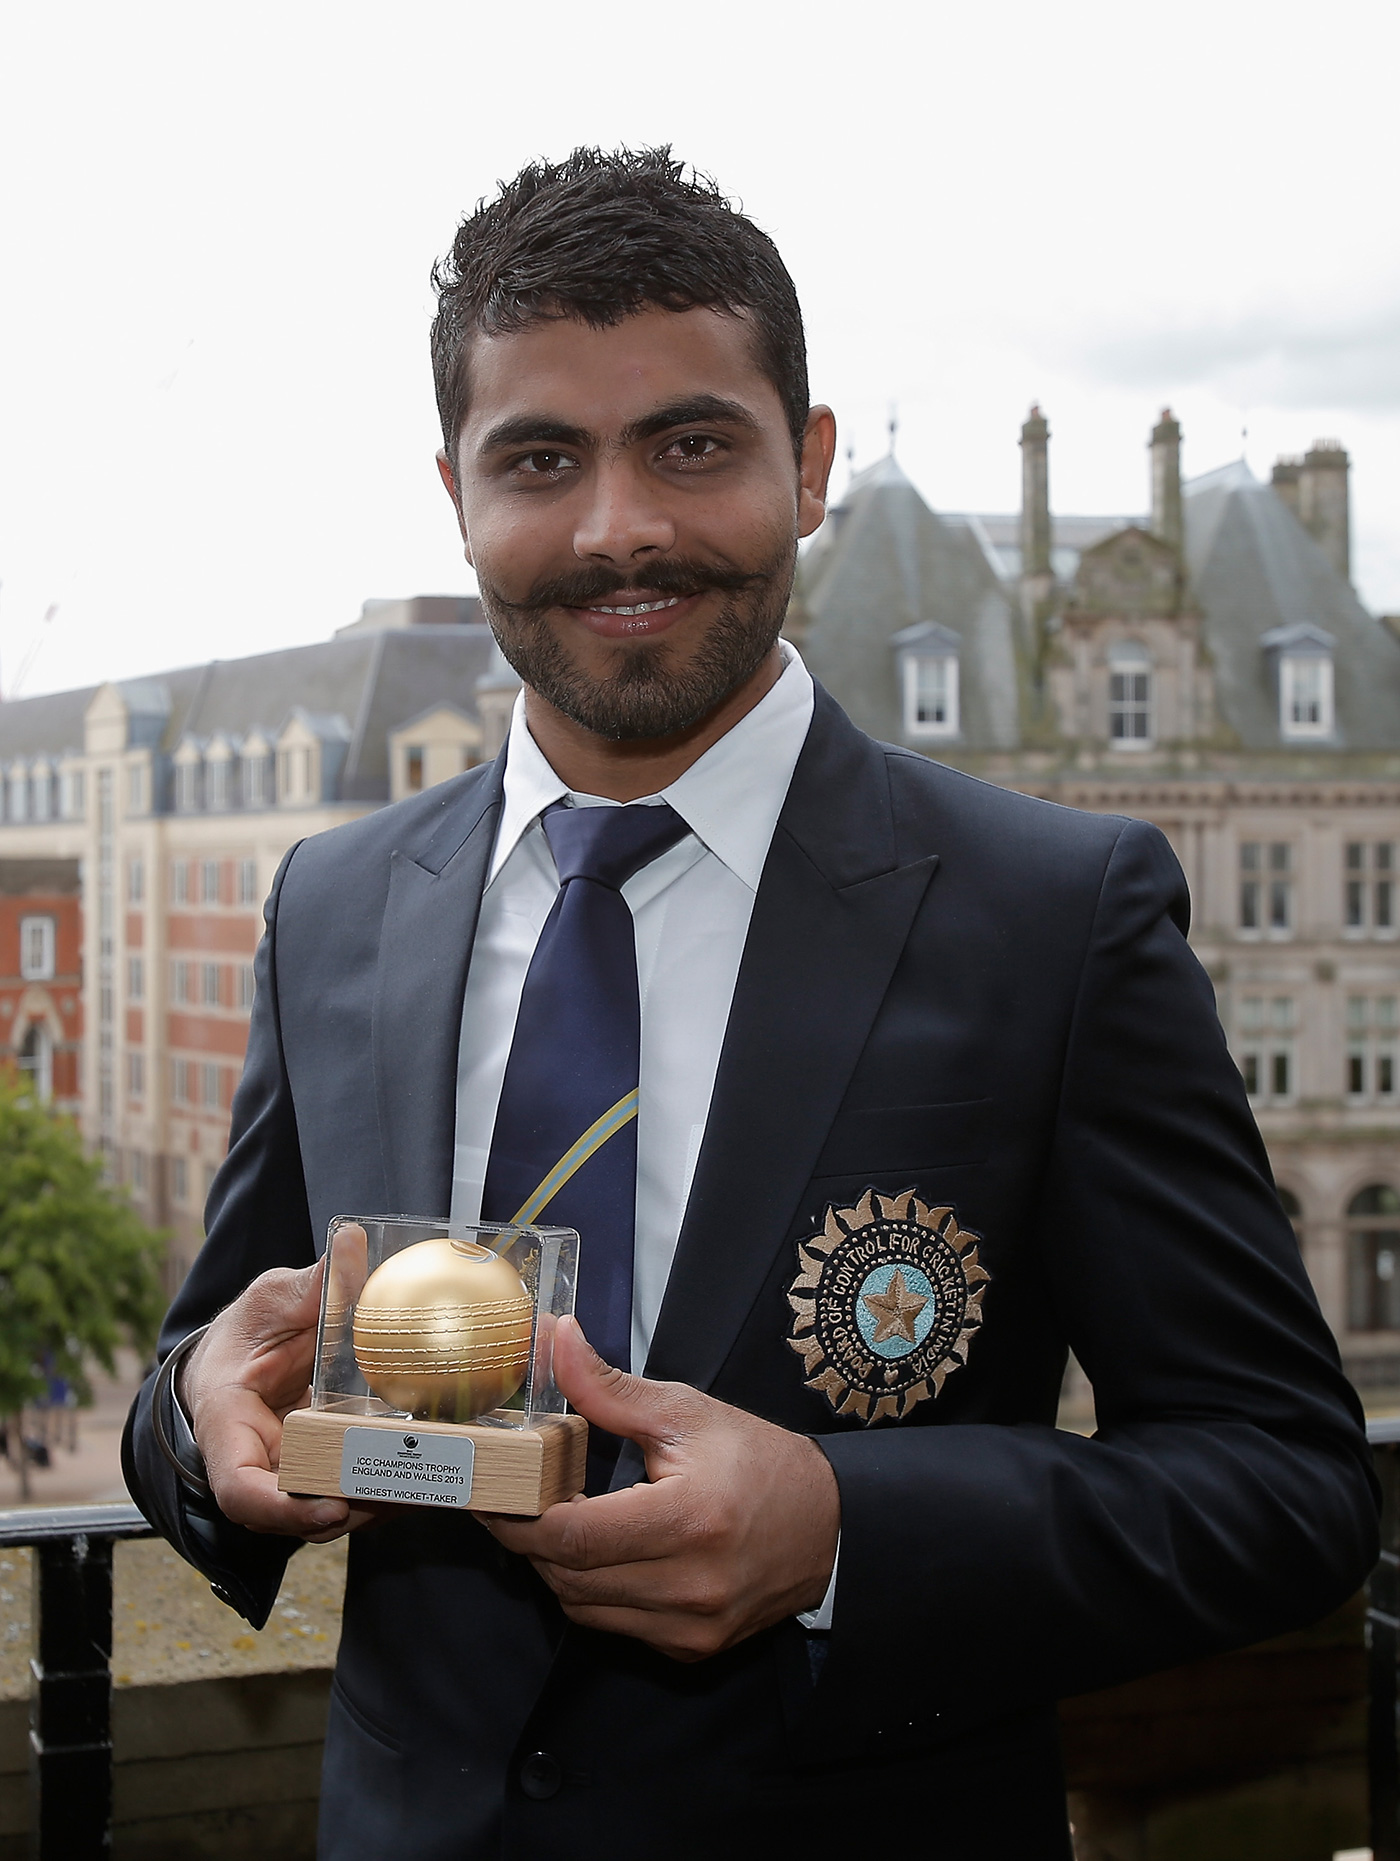 Golden arm: with the medal for the leading wicket-taker at the end of the 2013 Champions Trophy